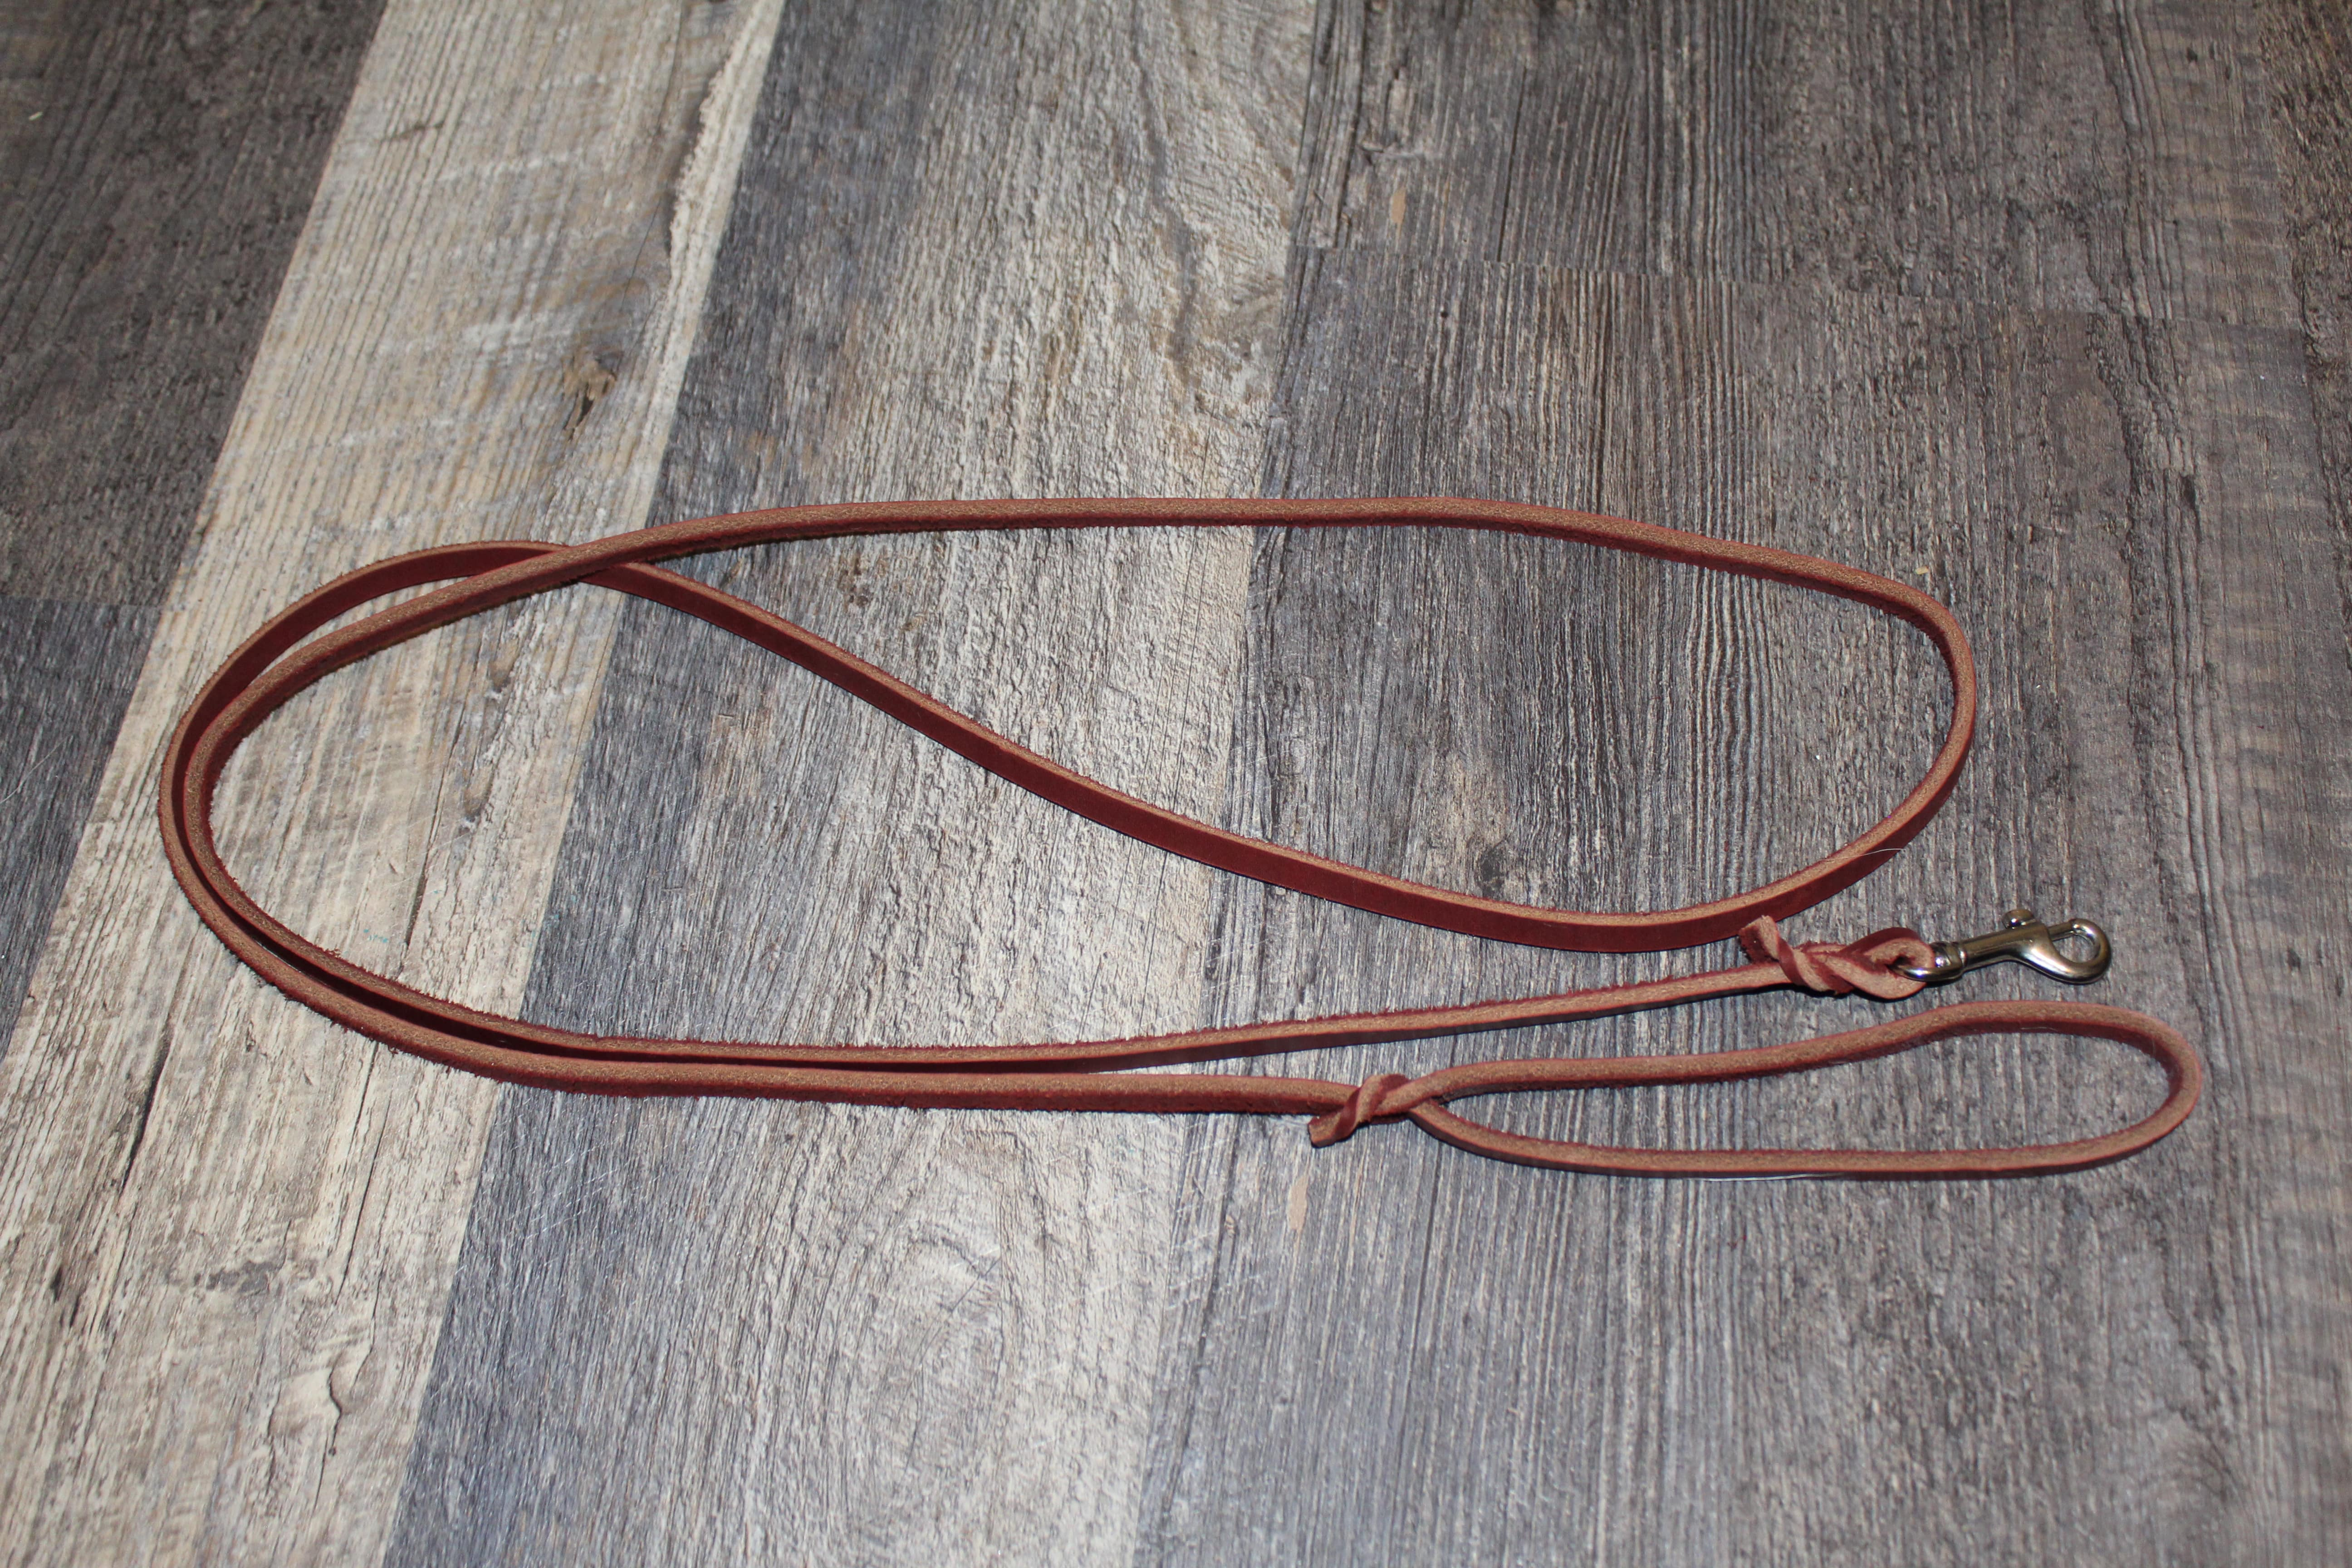 product image of a small leash for dogs